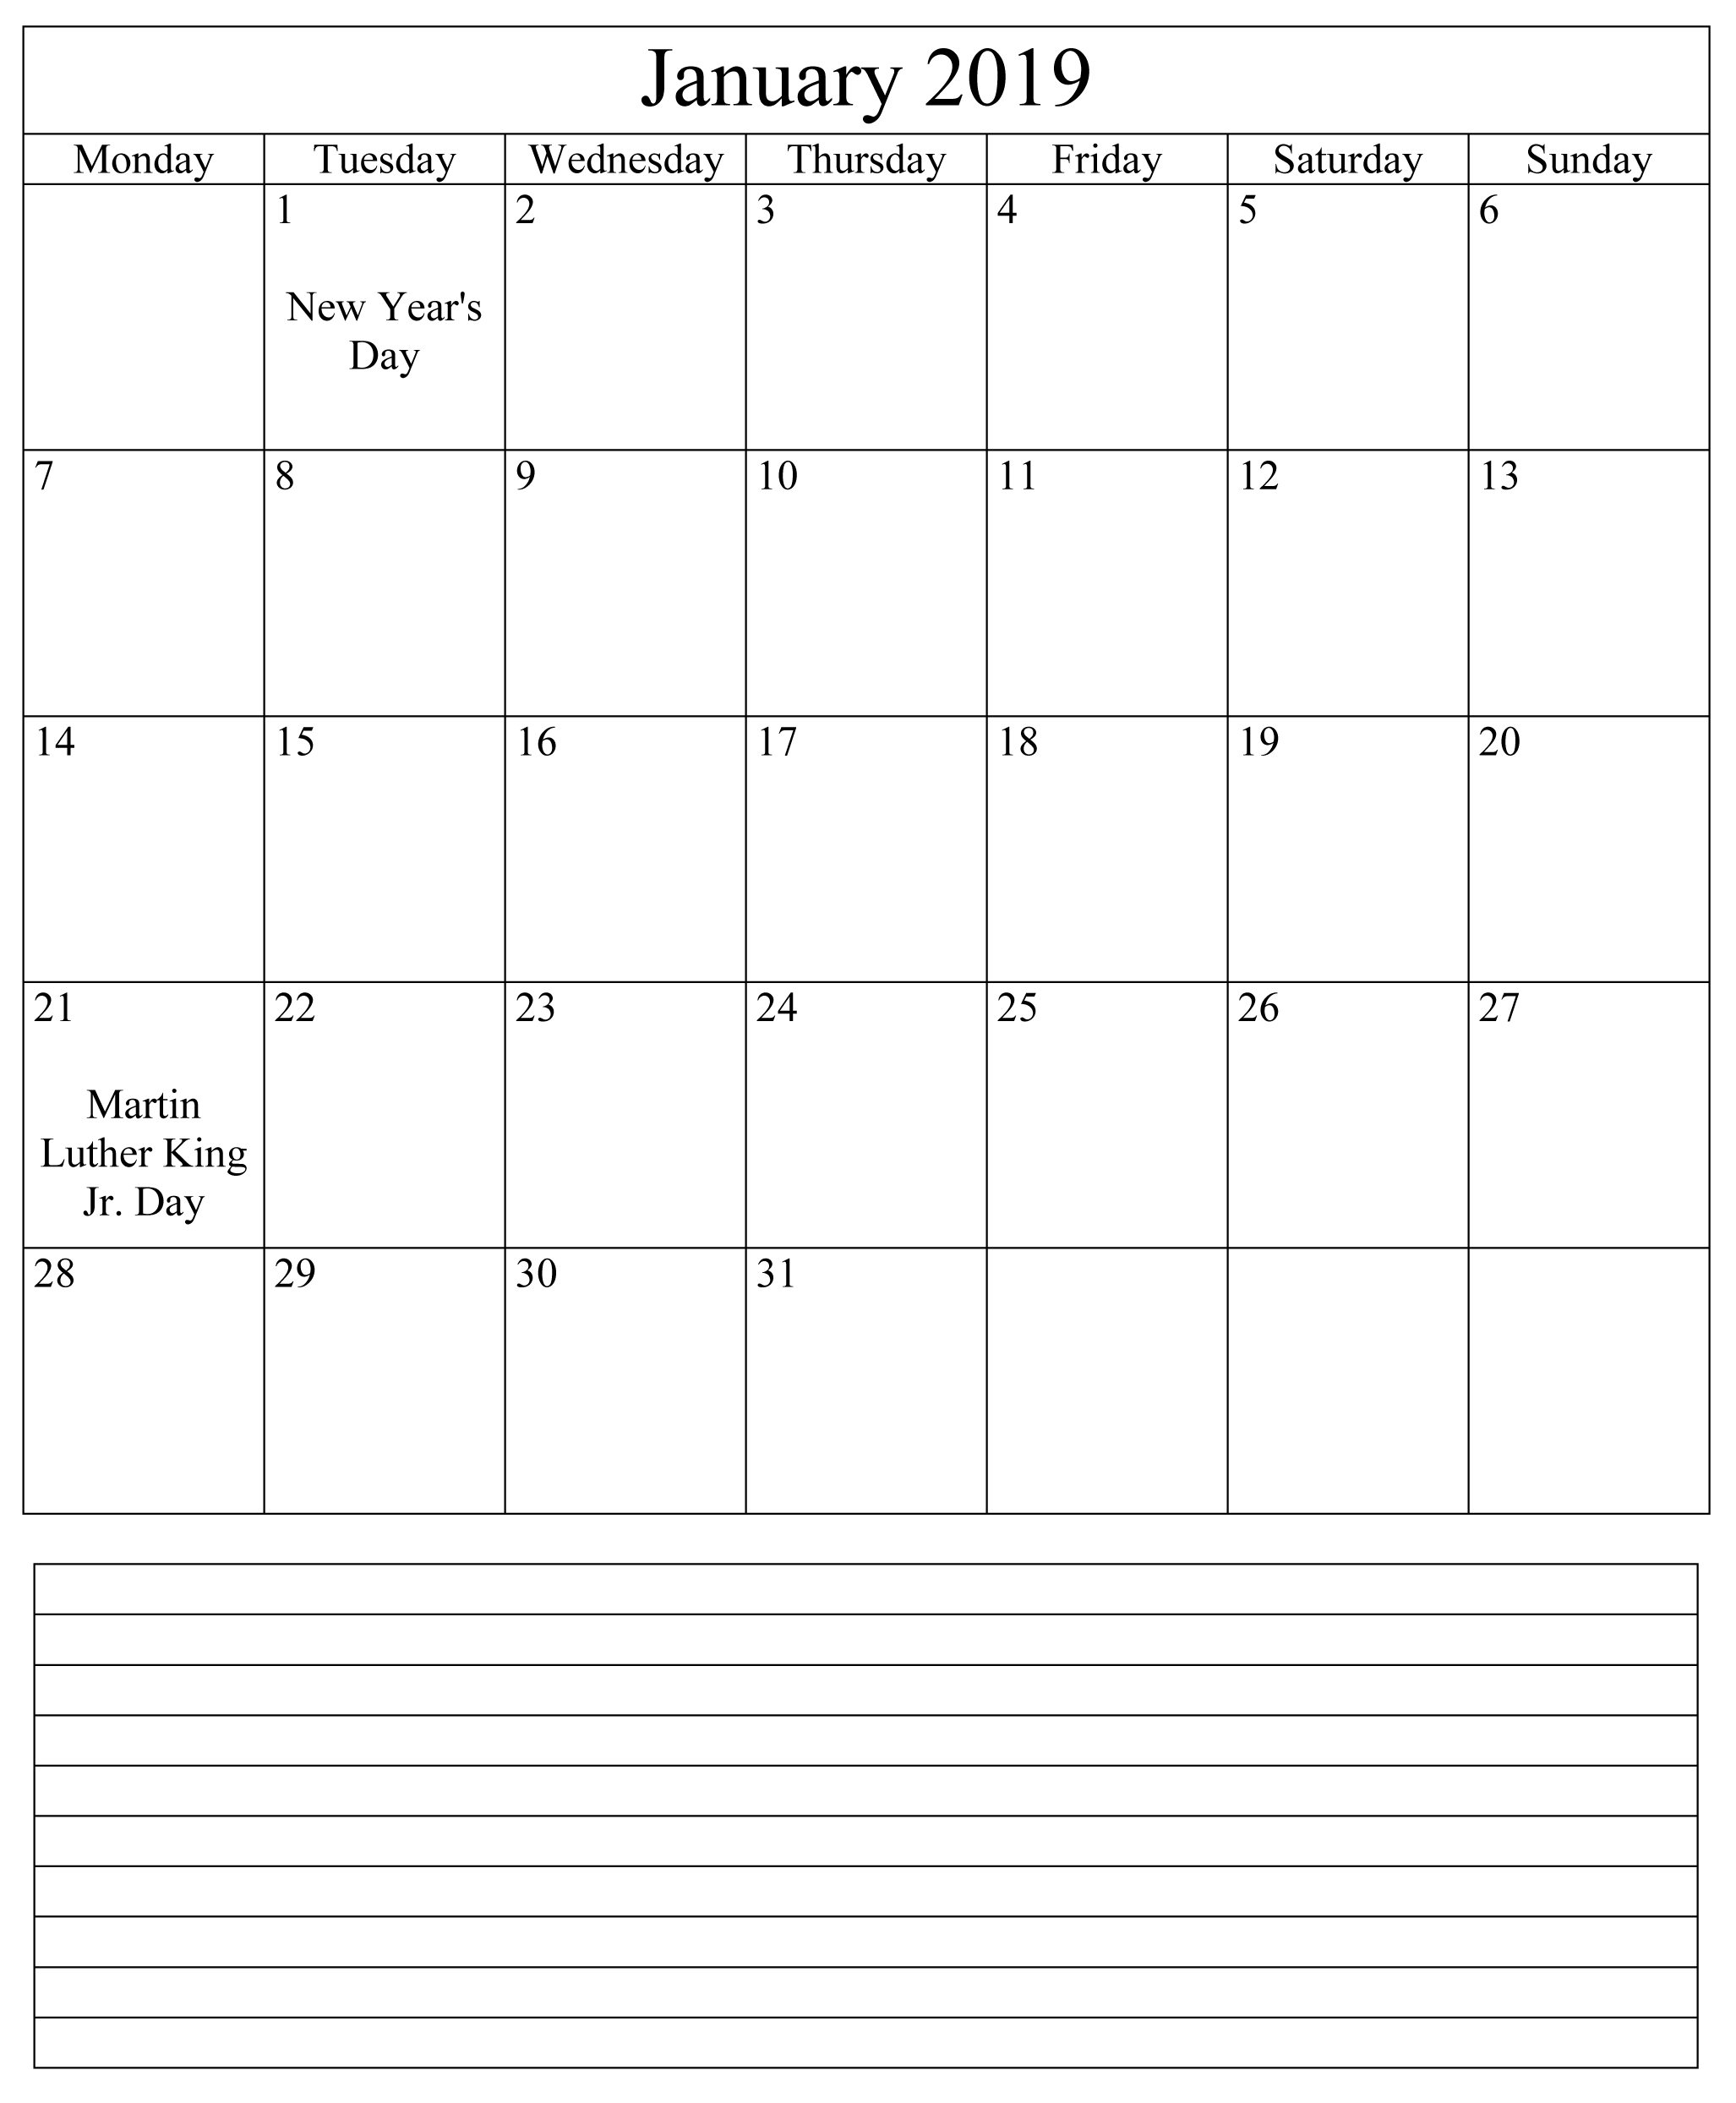 Wedding decorations at the beach january 2019 Calendar January  Excel  Academic Calendar  January For